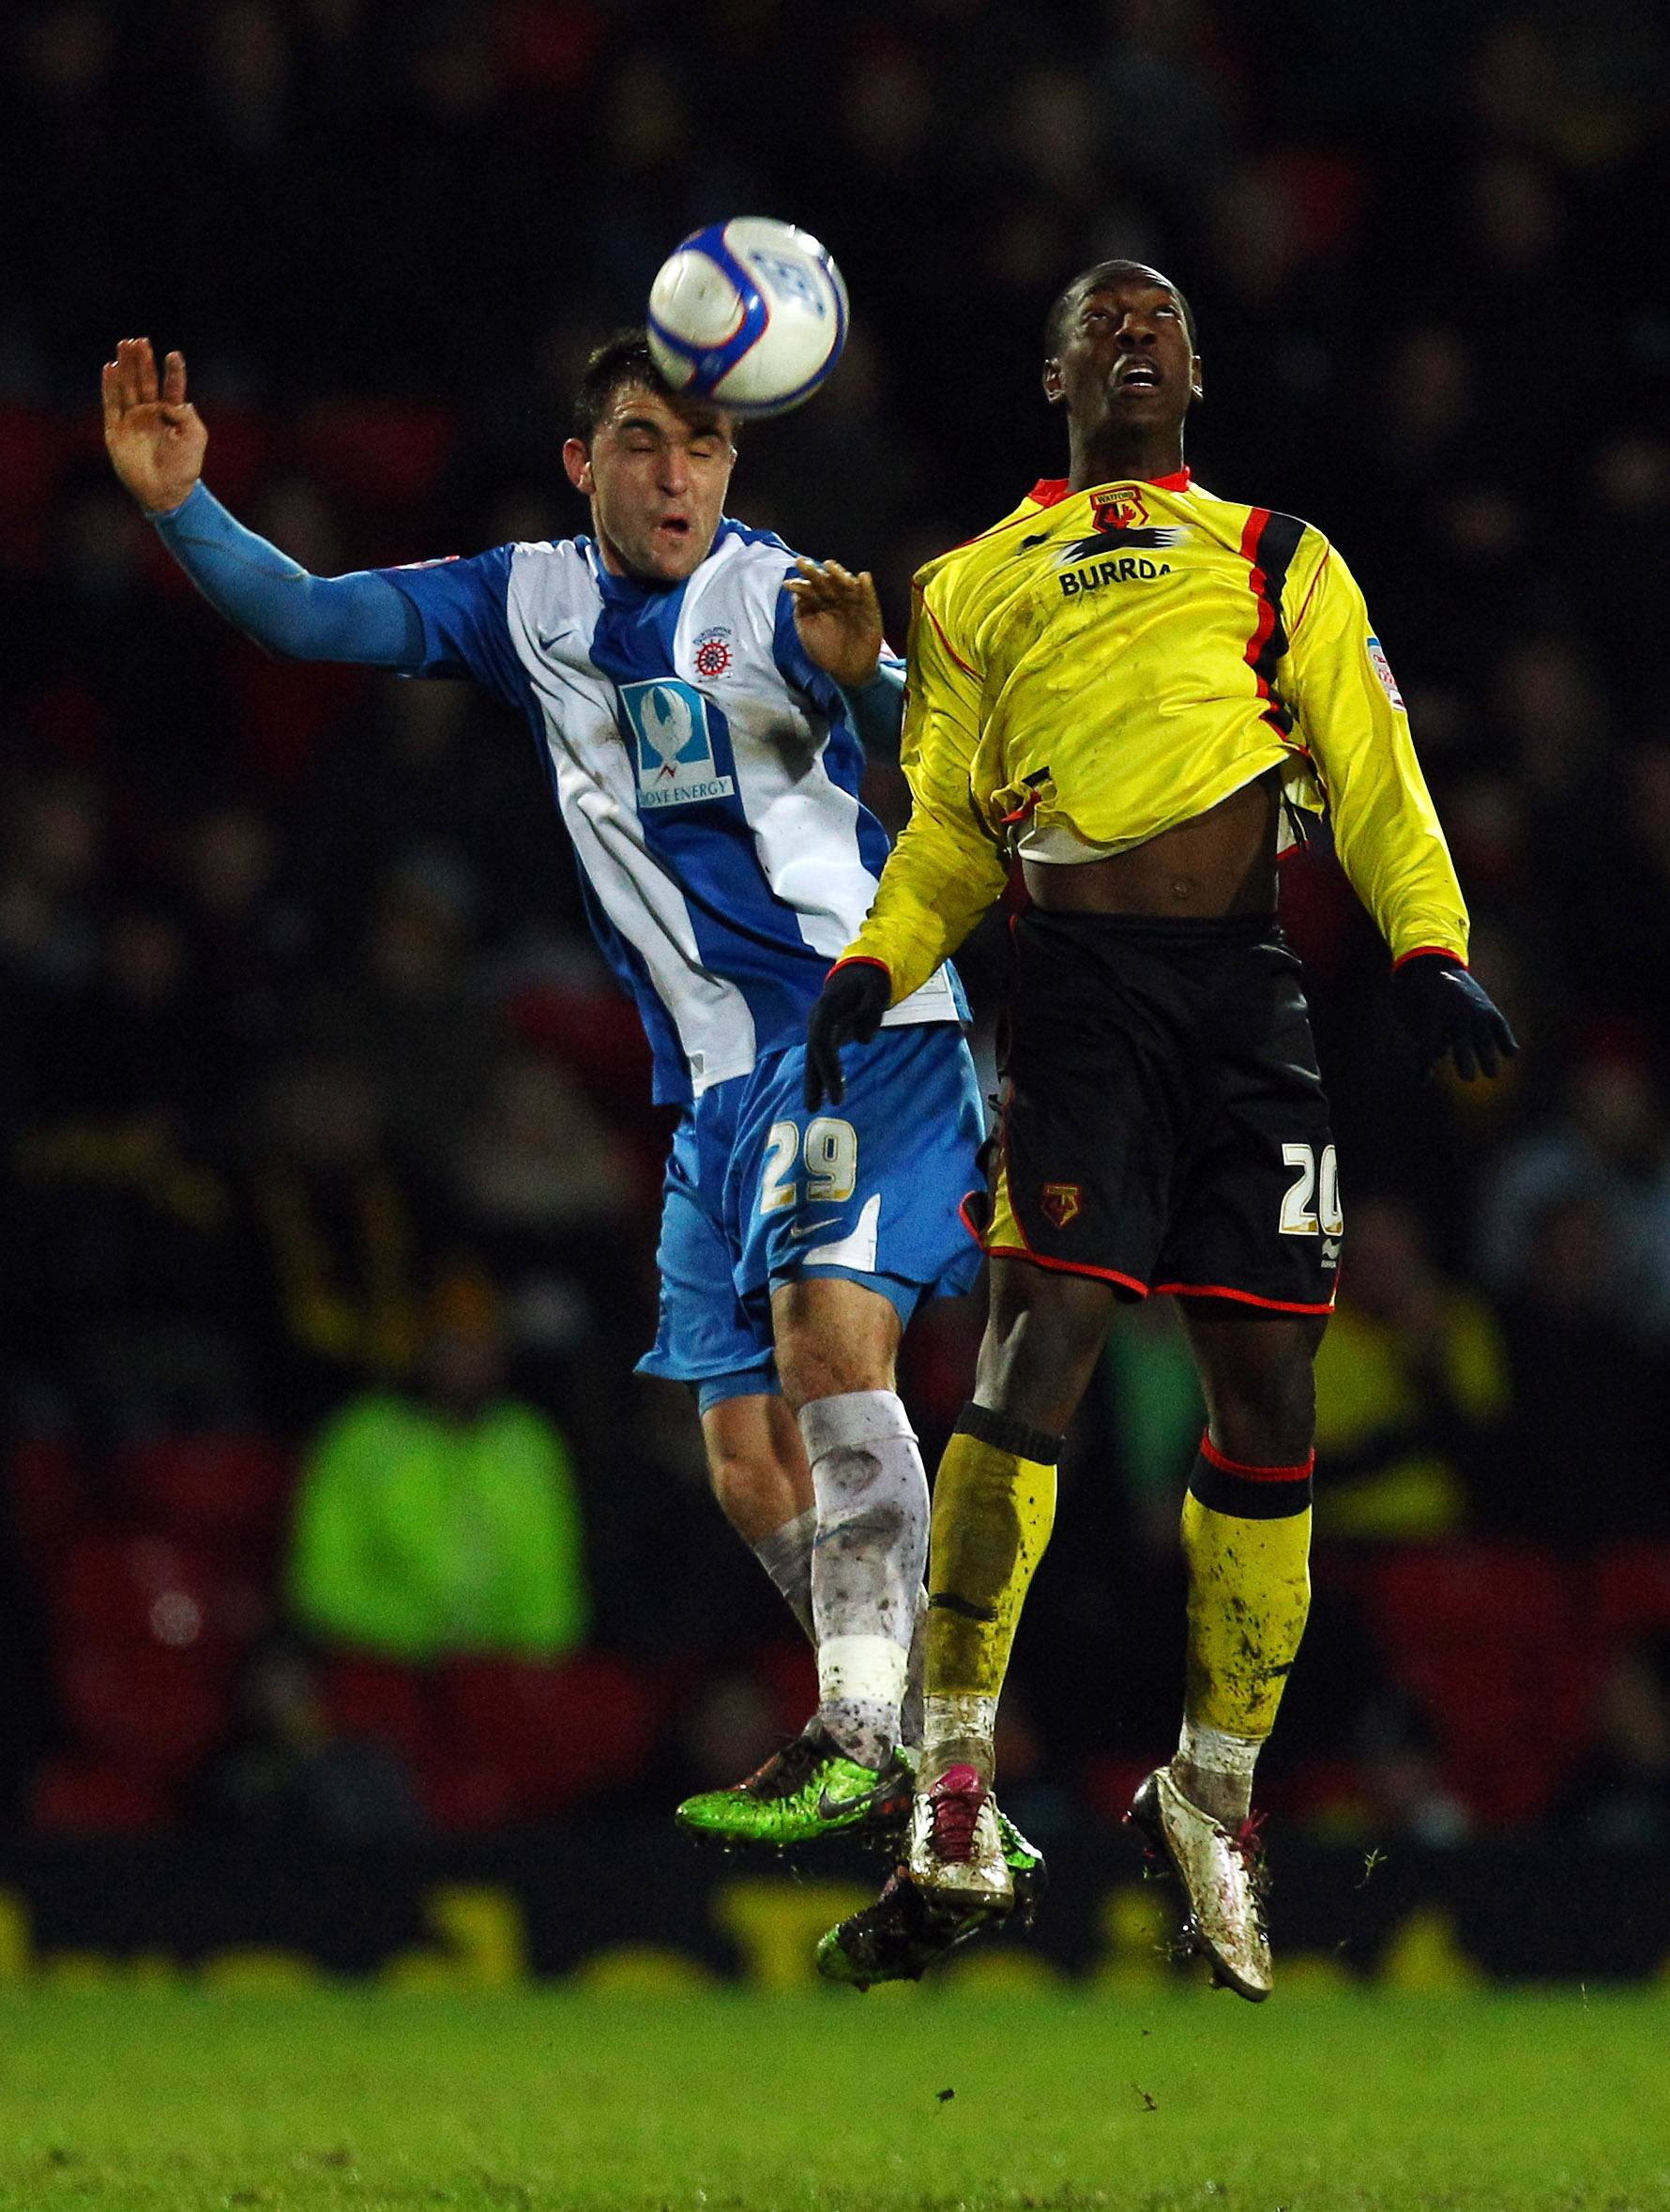 Hartley and Poole combine to make Hartlepool's day